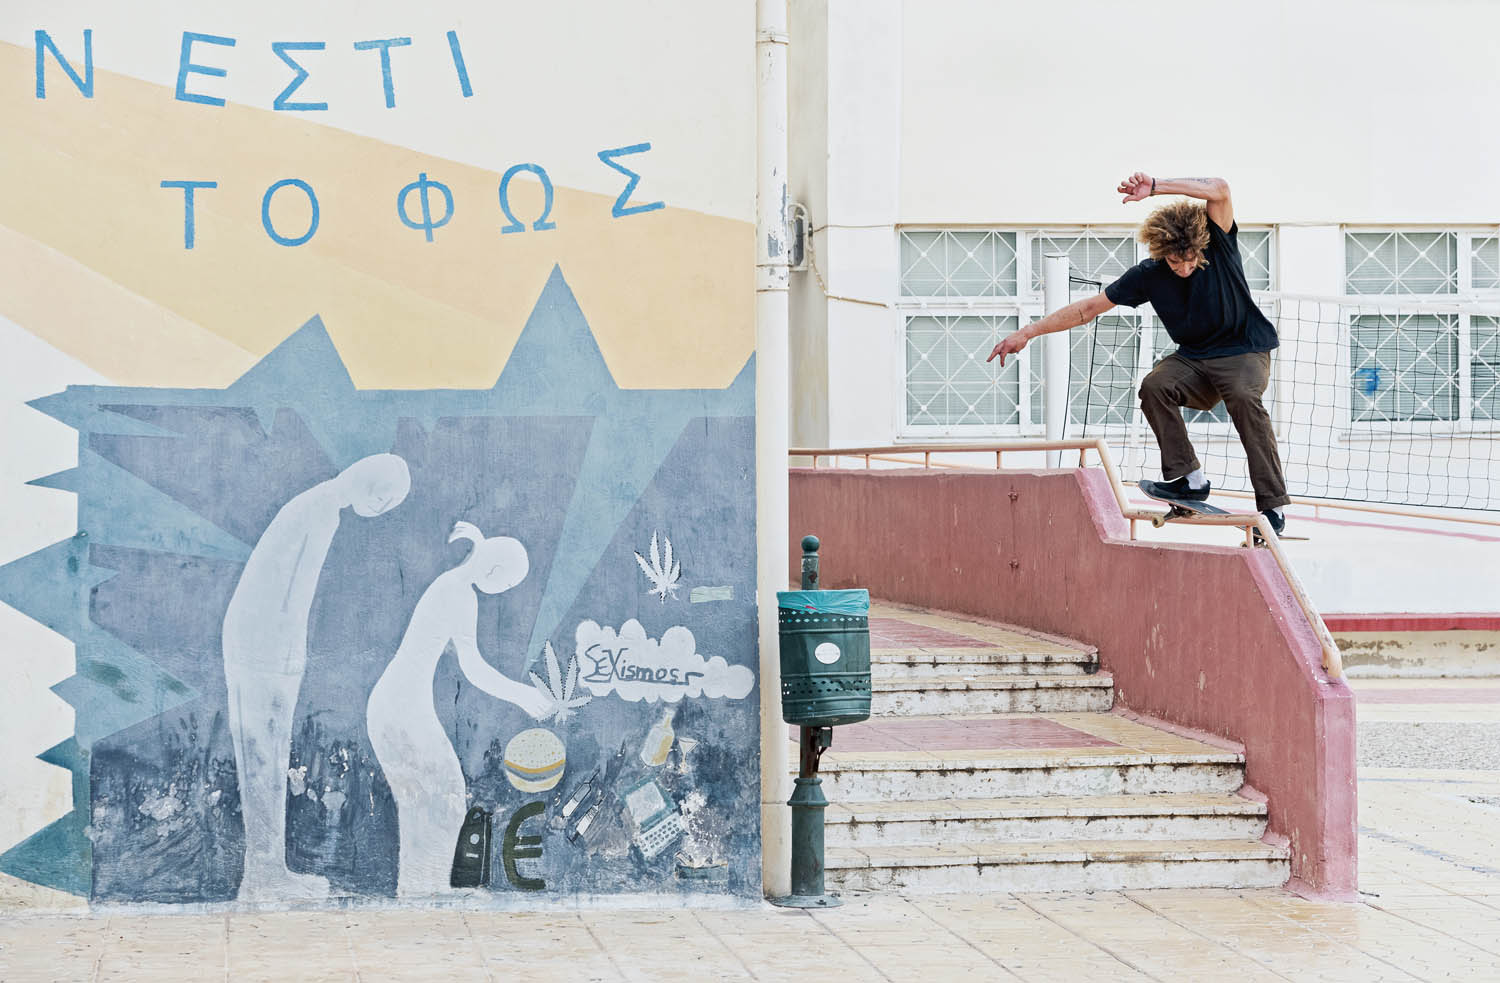 Victor_Pellegrin_Feeble_Pop_Out_Of_The_Side_NotSharpened_AdobeRGB_2982